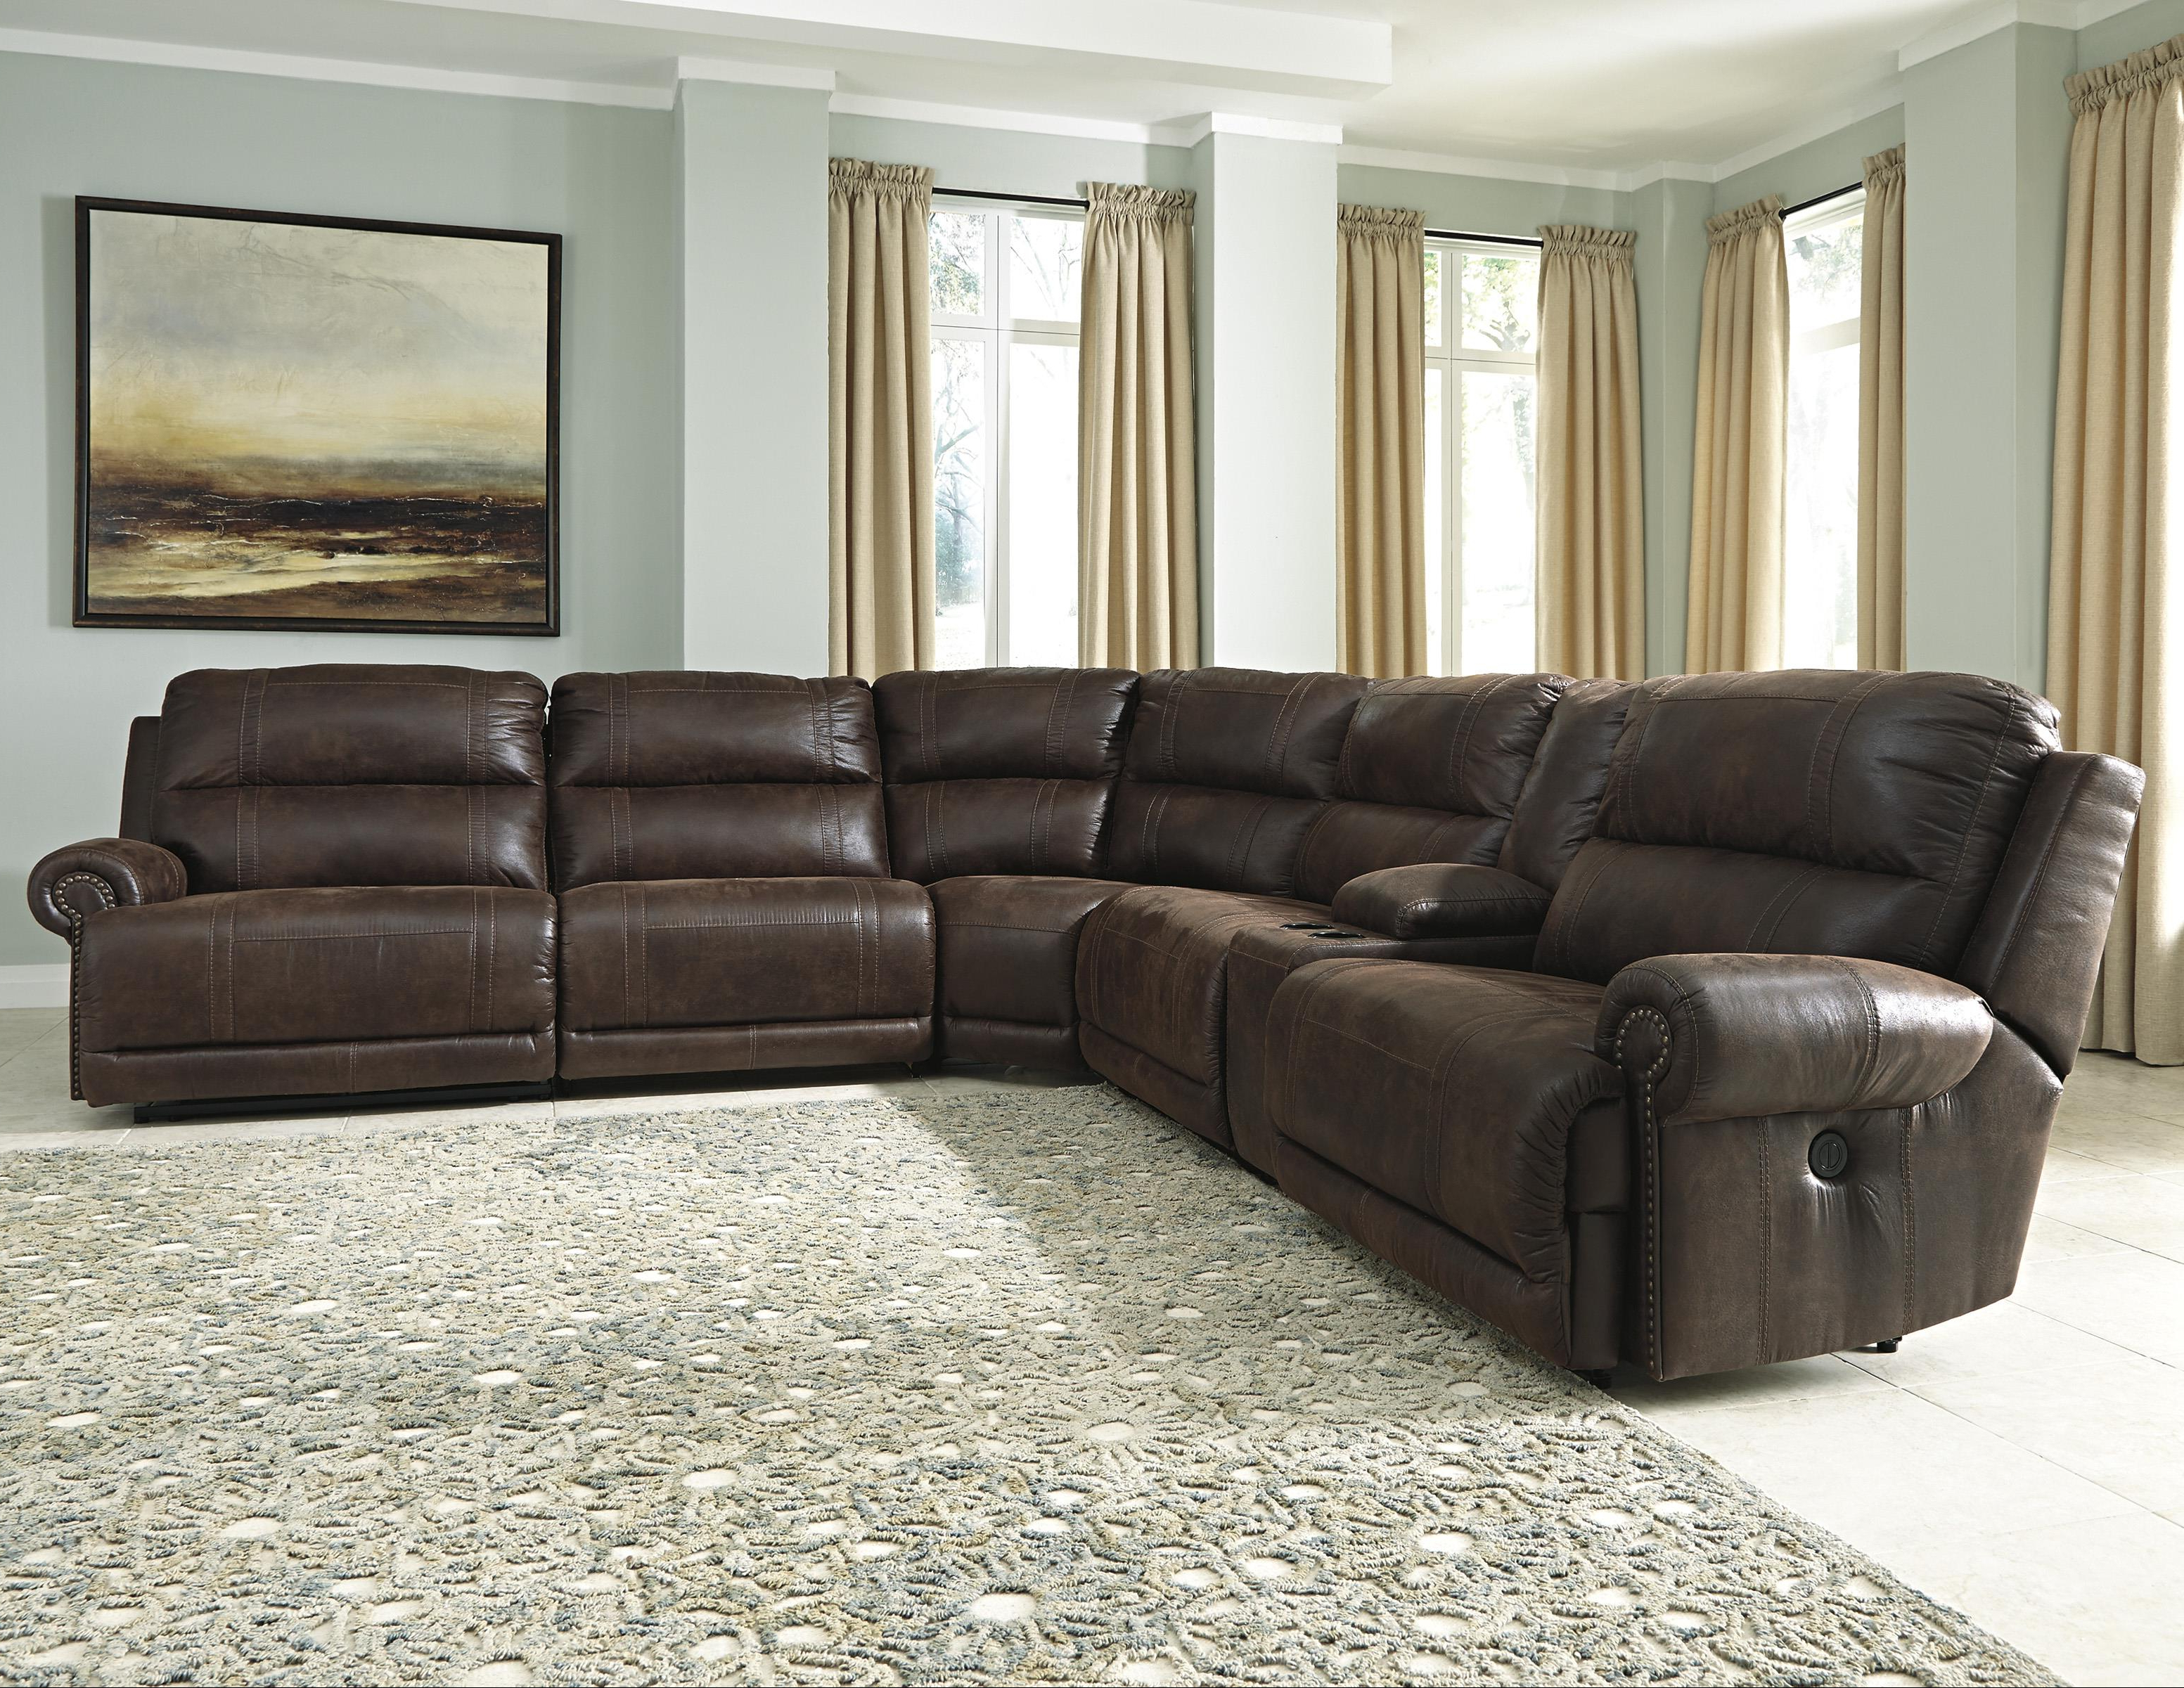 Best And Newest Jackson 6 Piece Power Reclining Sectionals Pertaining To Signature Designashley Luttrell 6 Piece Power Reclining (View 8 of 20)